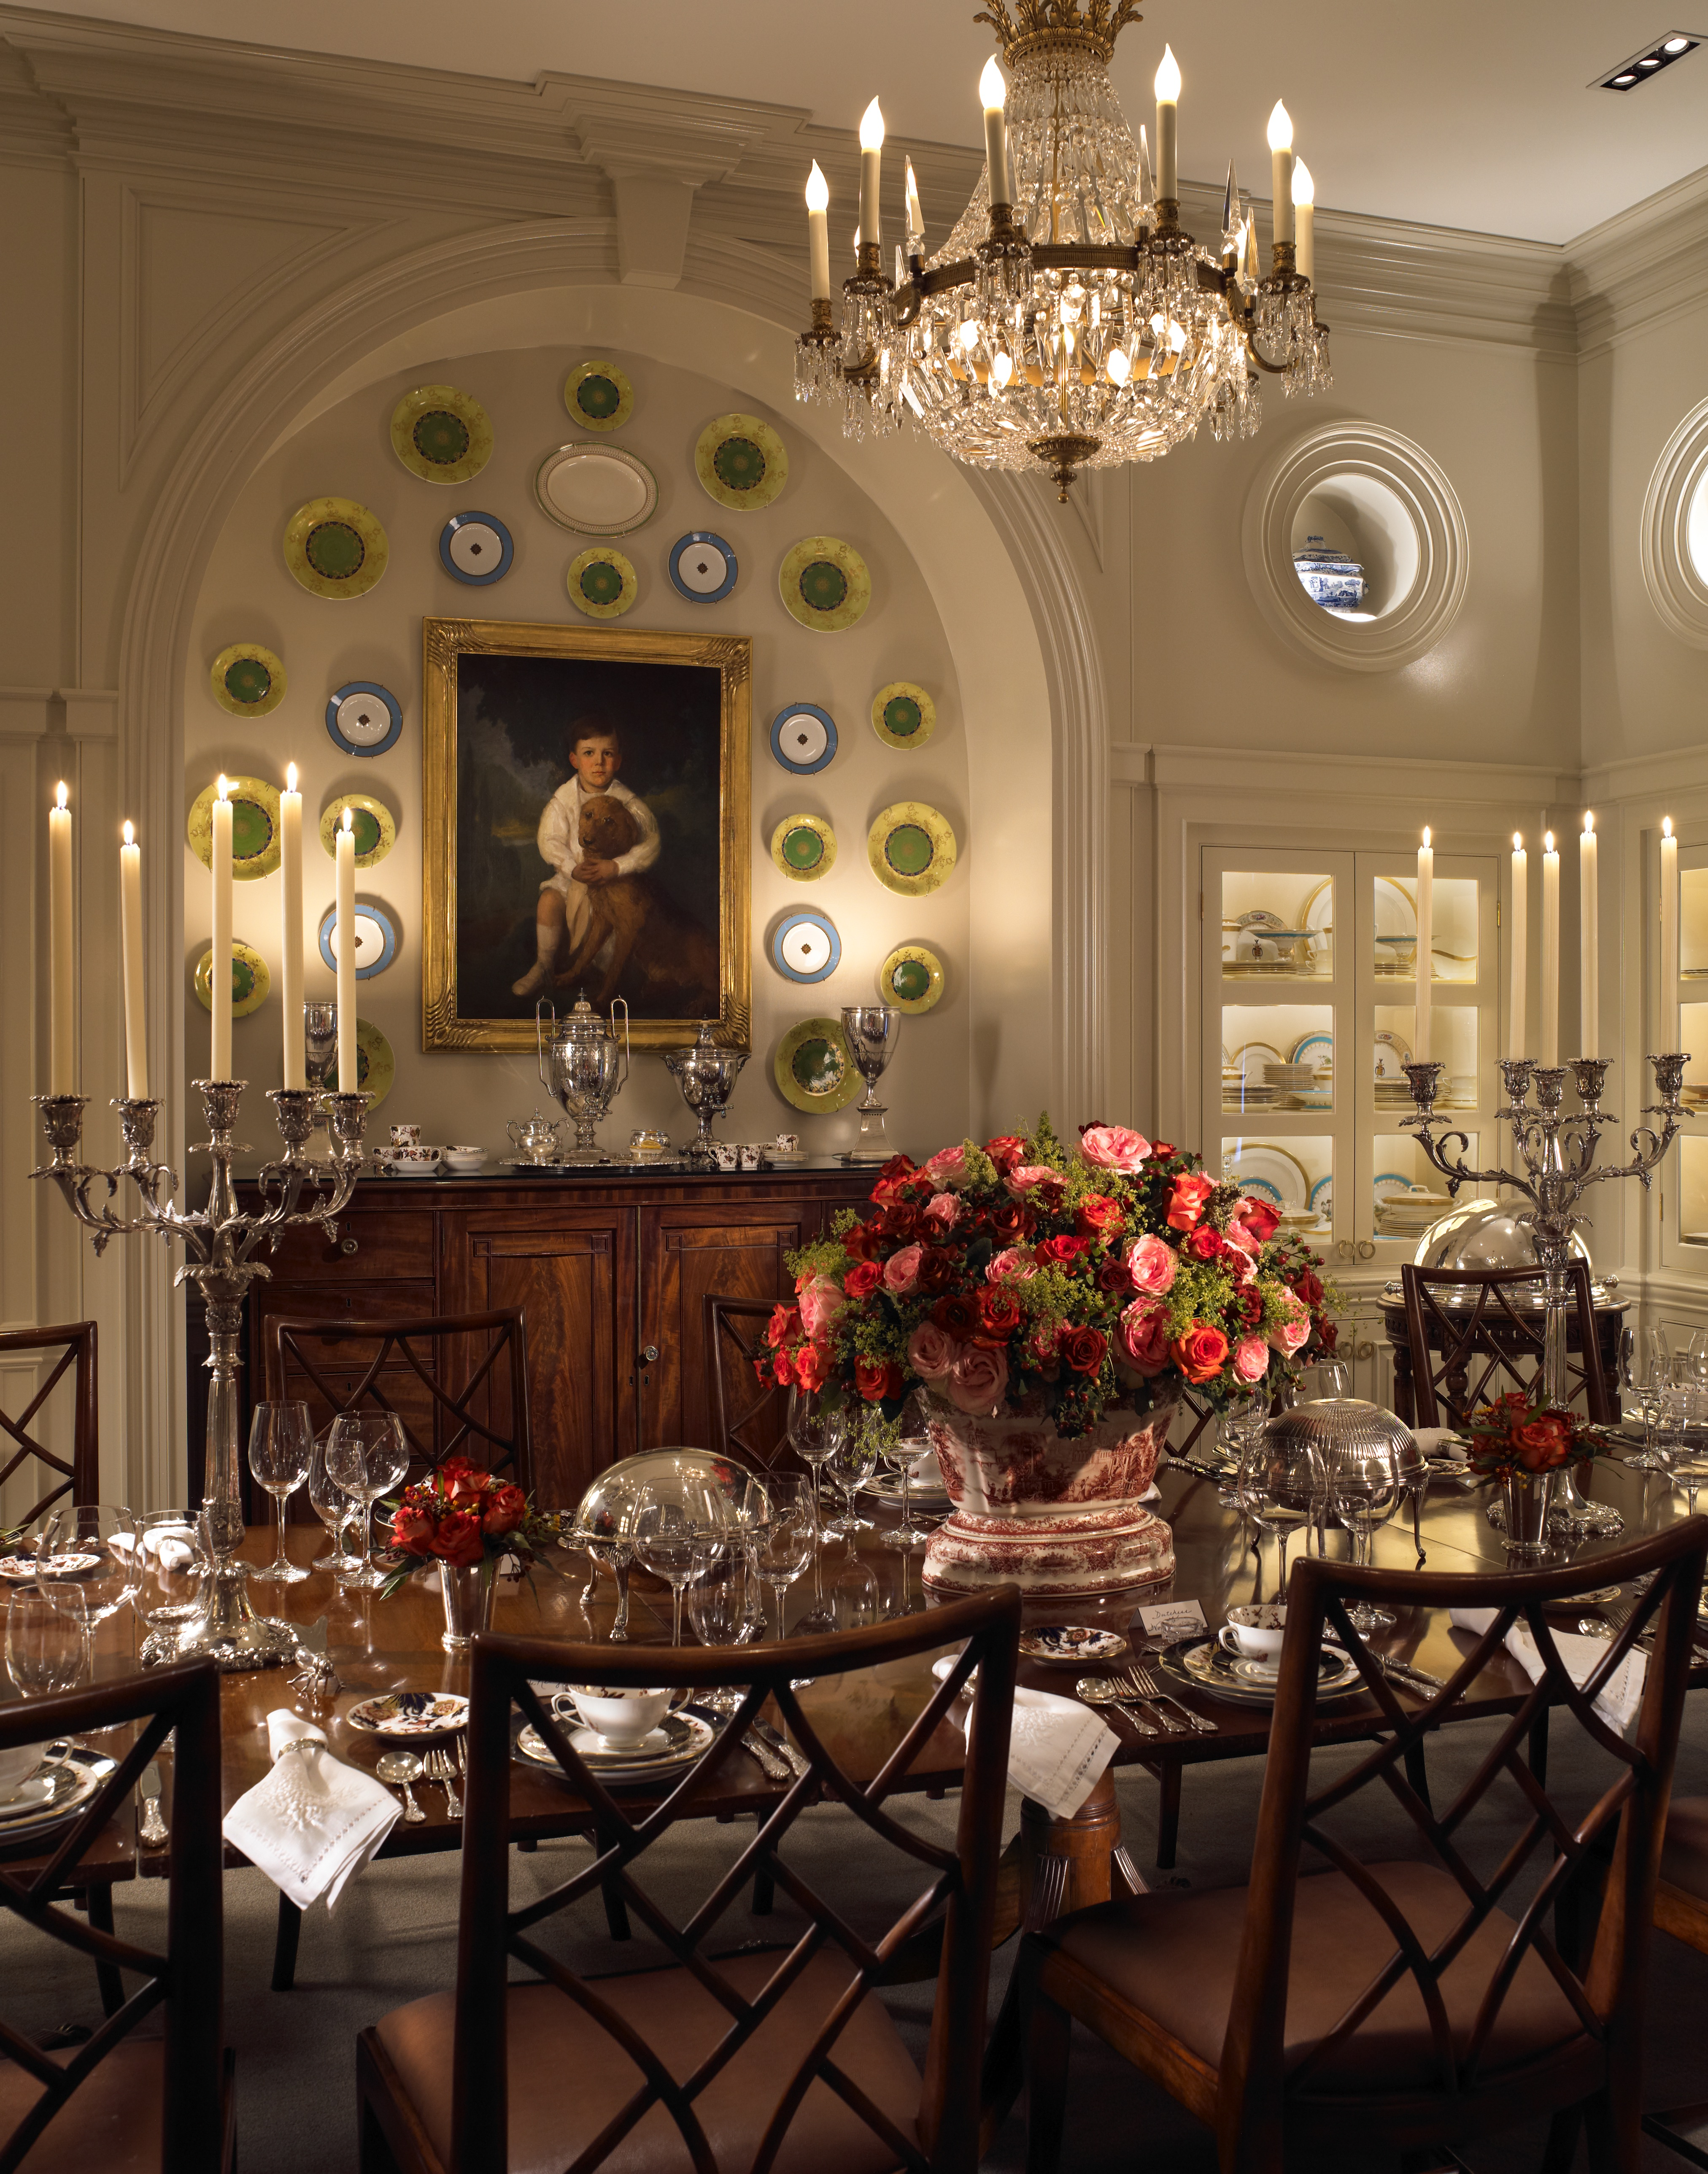 Luxury Formal Dining Room Sets: How Two Neglected Mansions Became Leading Luxury Hotels